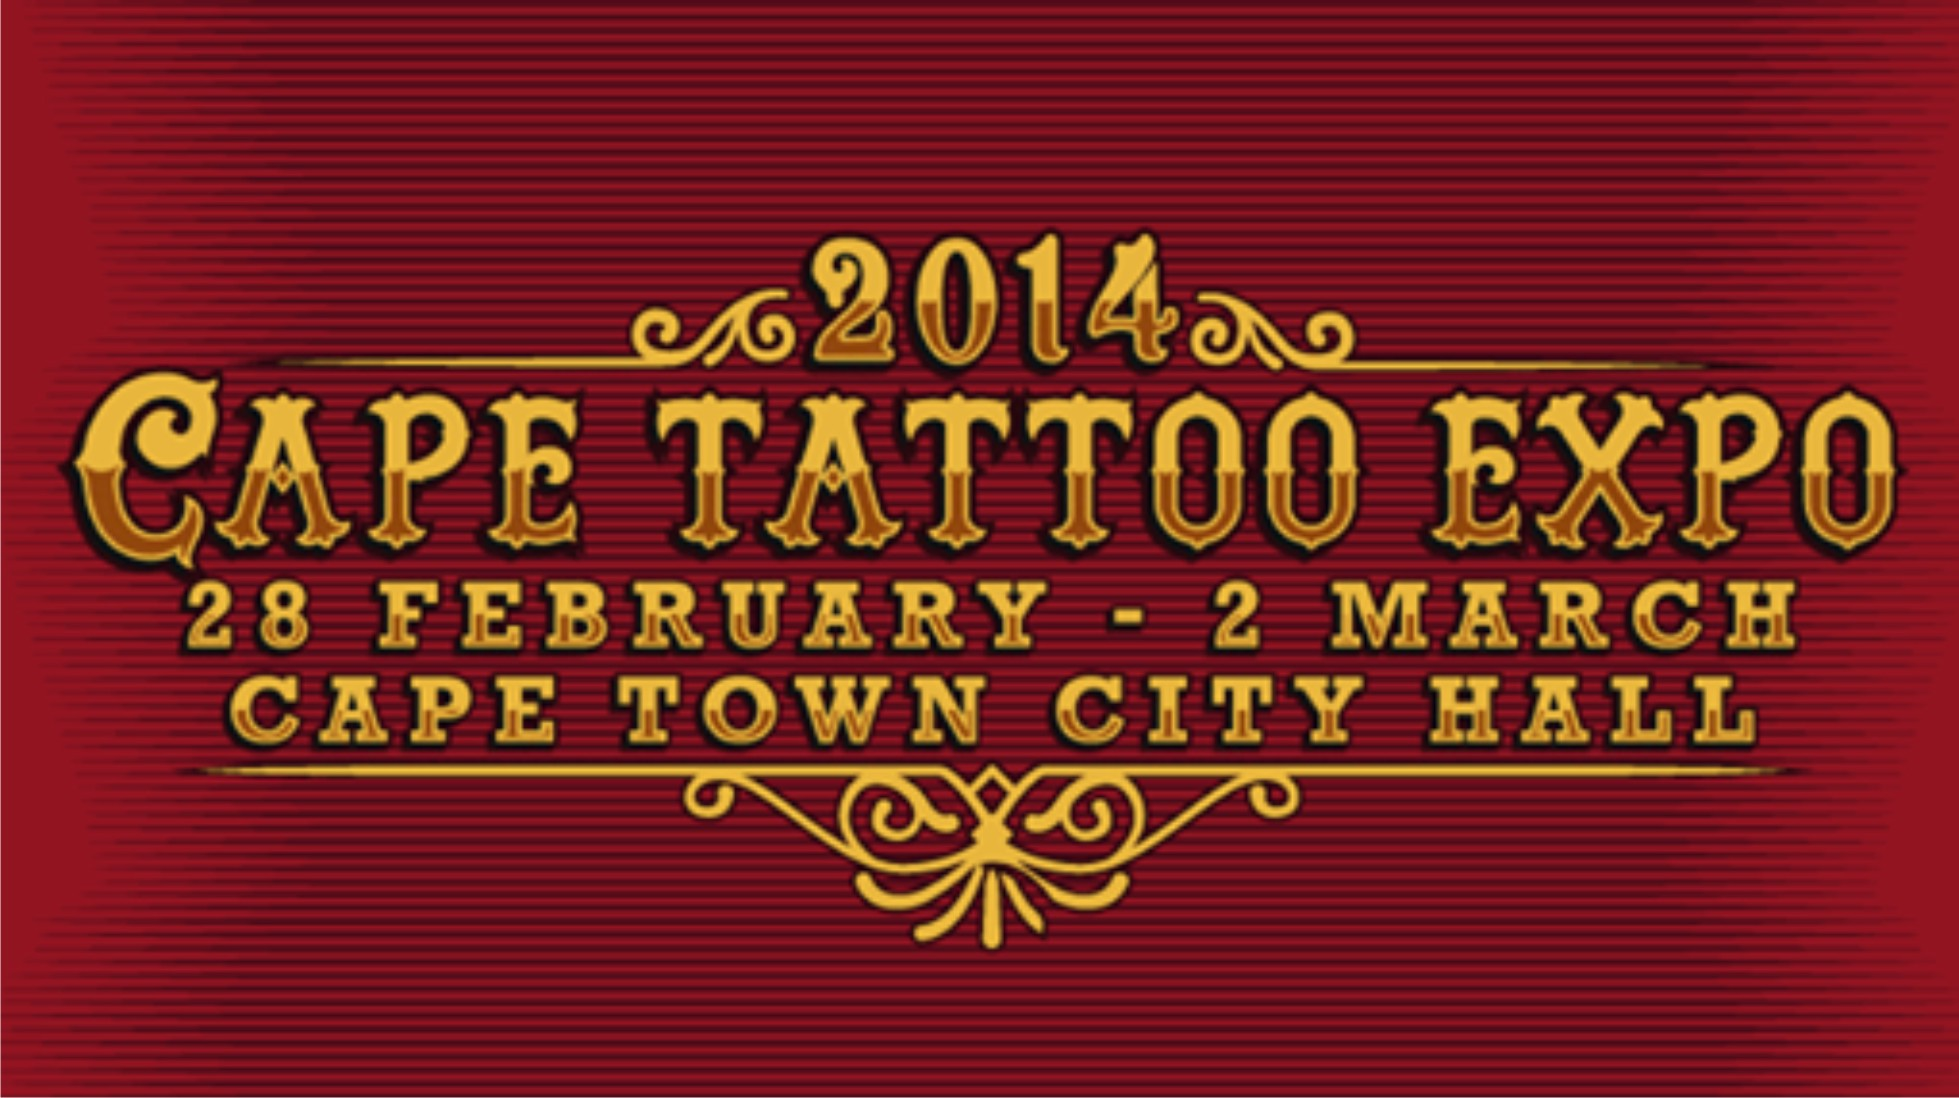 Details for the 2014 Cape Tattoo Expo